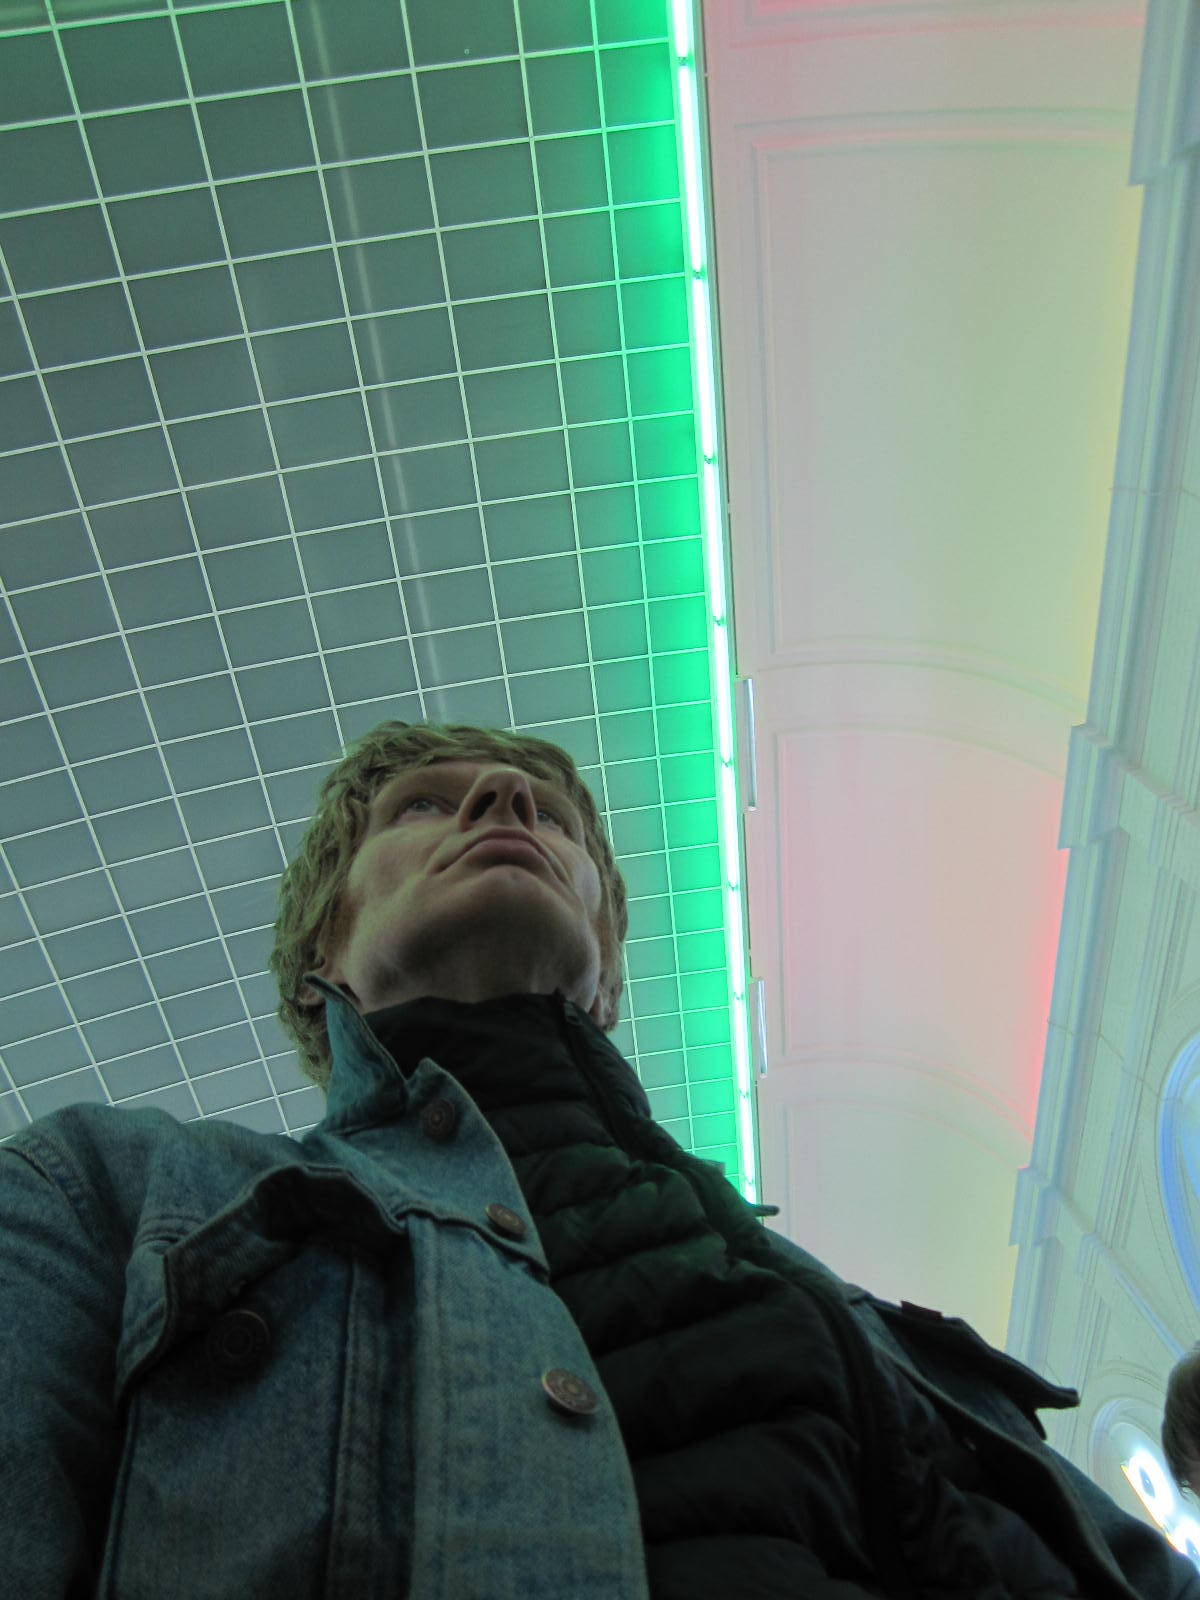 JGT at Stedelijk Museum, Dan Flavin installation, where freq_out 9 took place on 2/21/13 for the Sonic Acts Festival